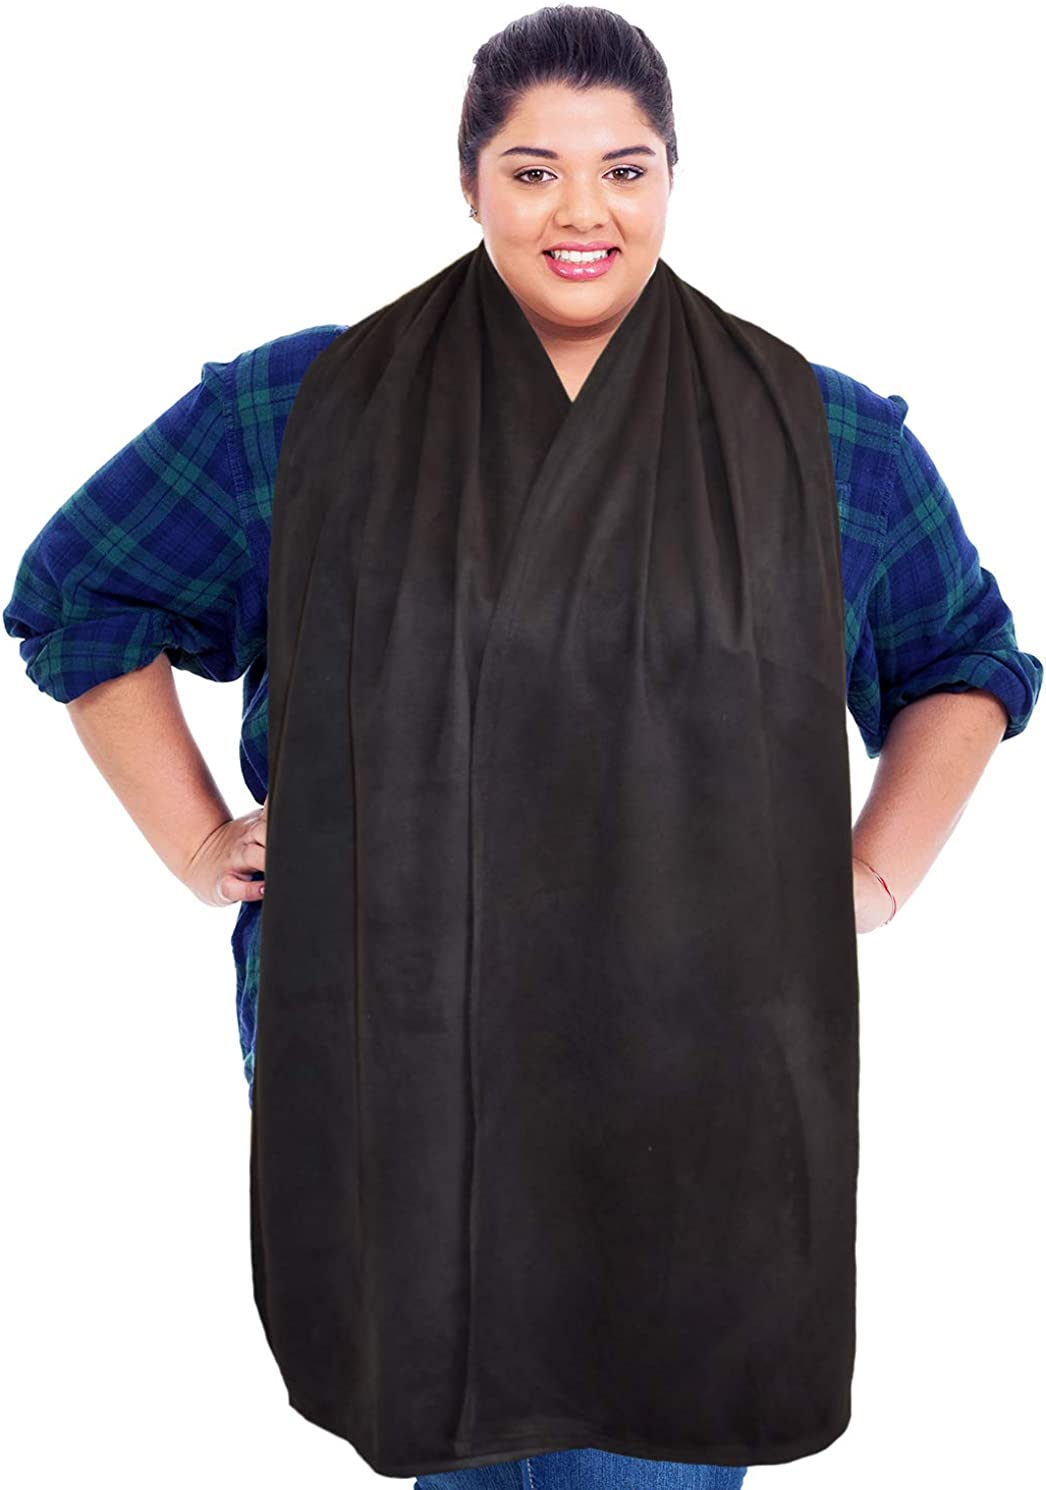 DinerWear Chic Adult Bib Dining Resis Stain Scarf 25% OFF Cravaat New color Large-